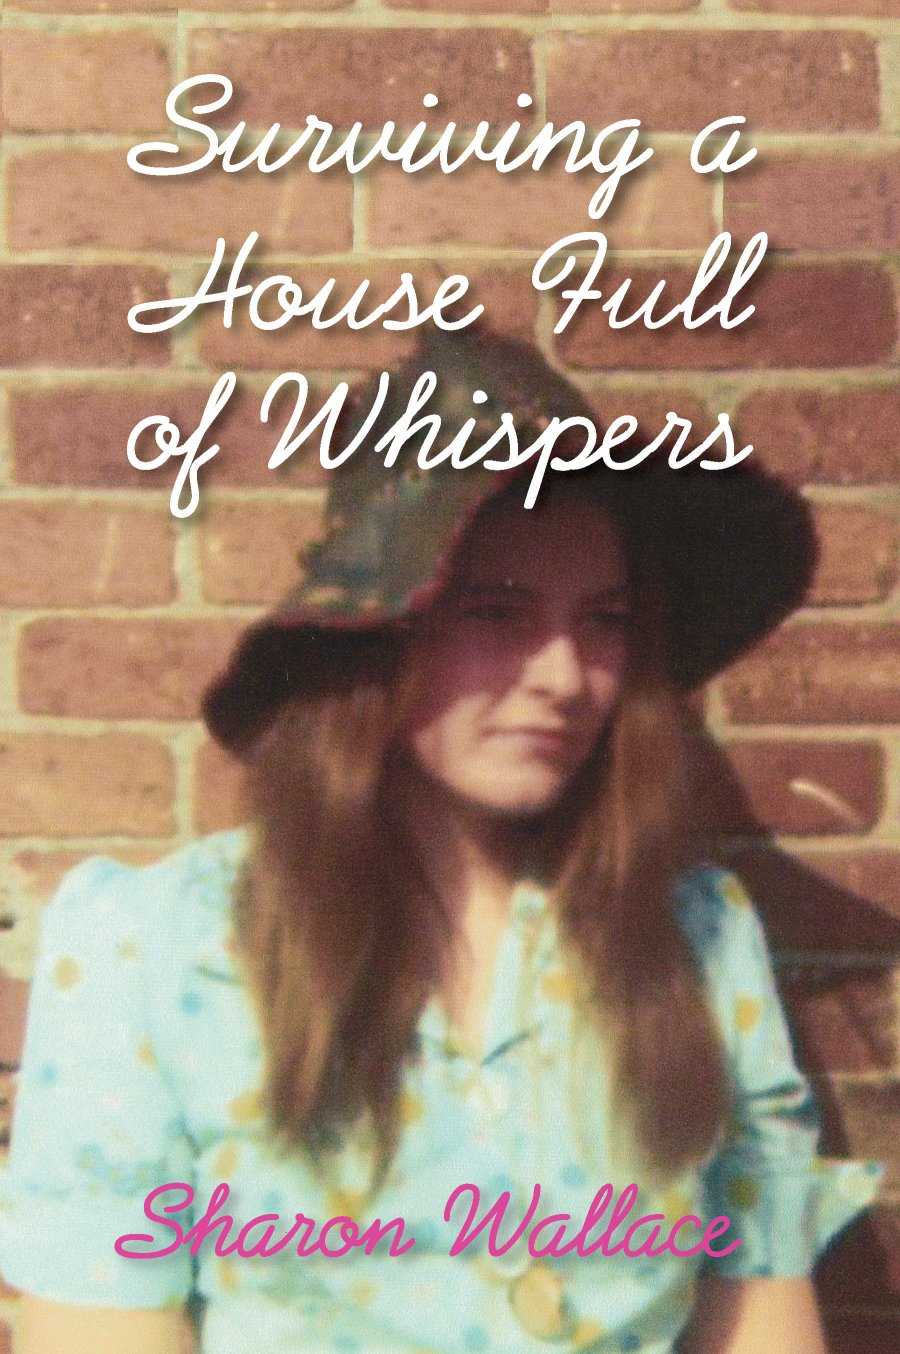 Surviving A House Full of Whispers 978-1-932690-90-3